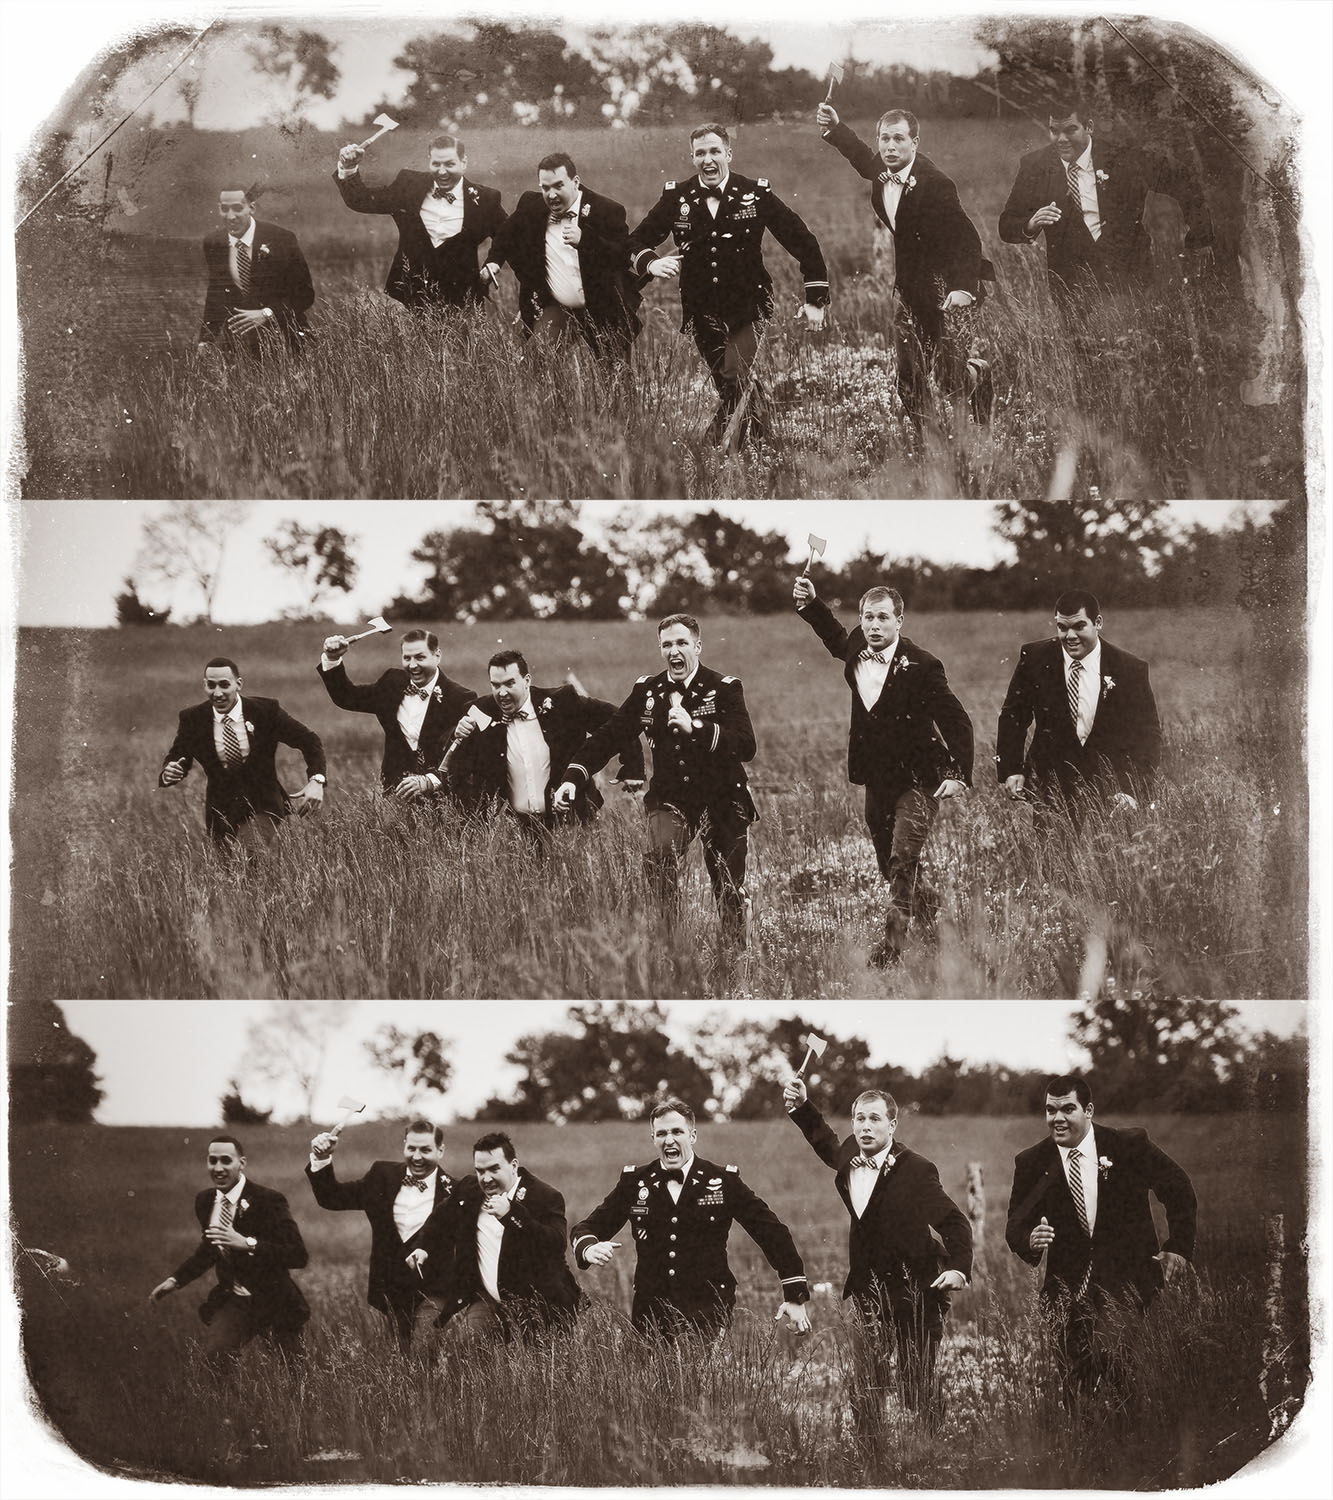 A groom has his picture taken with his groomsmen.